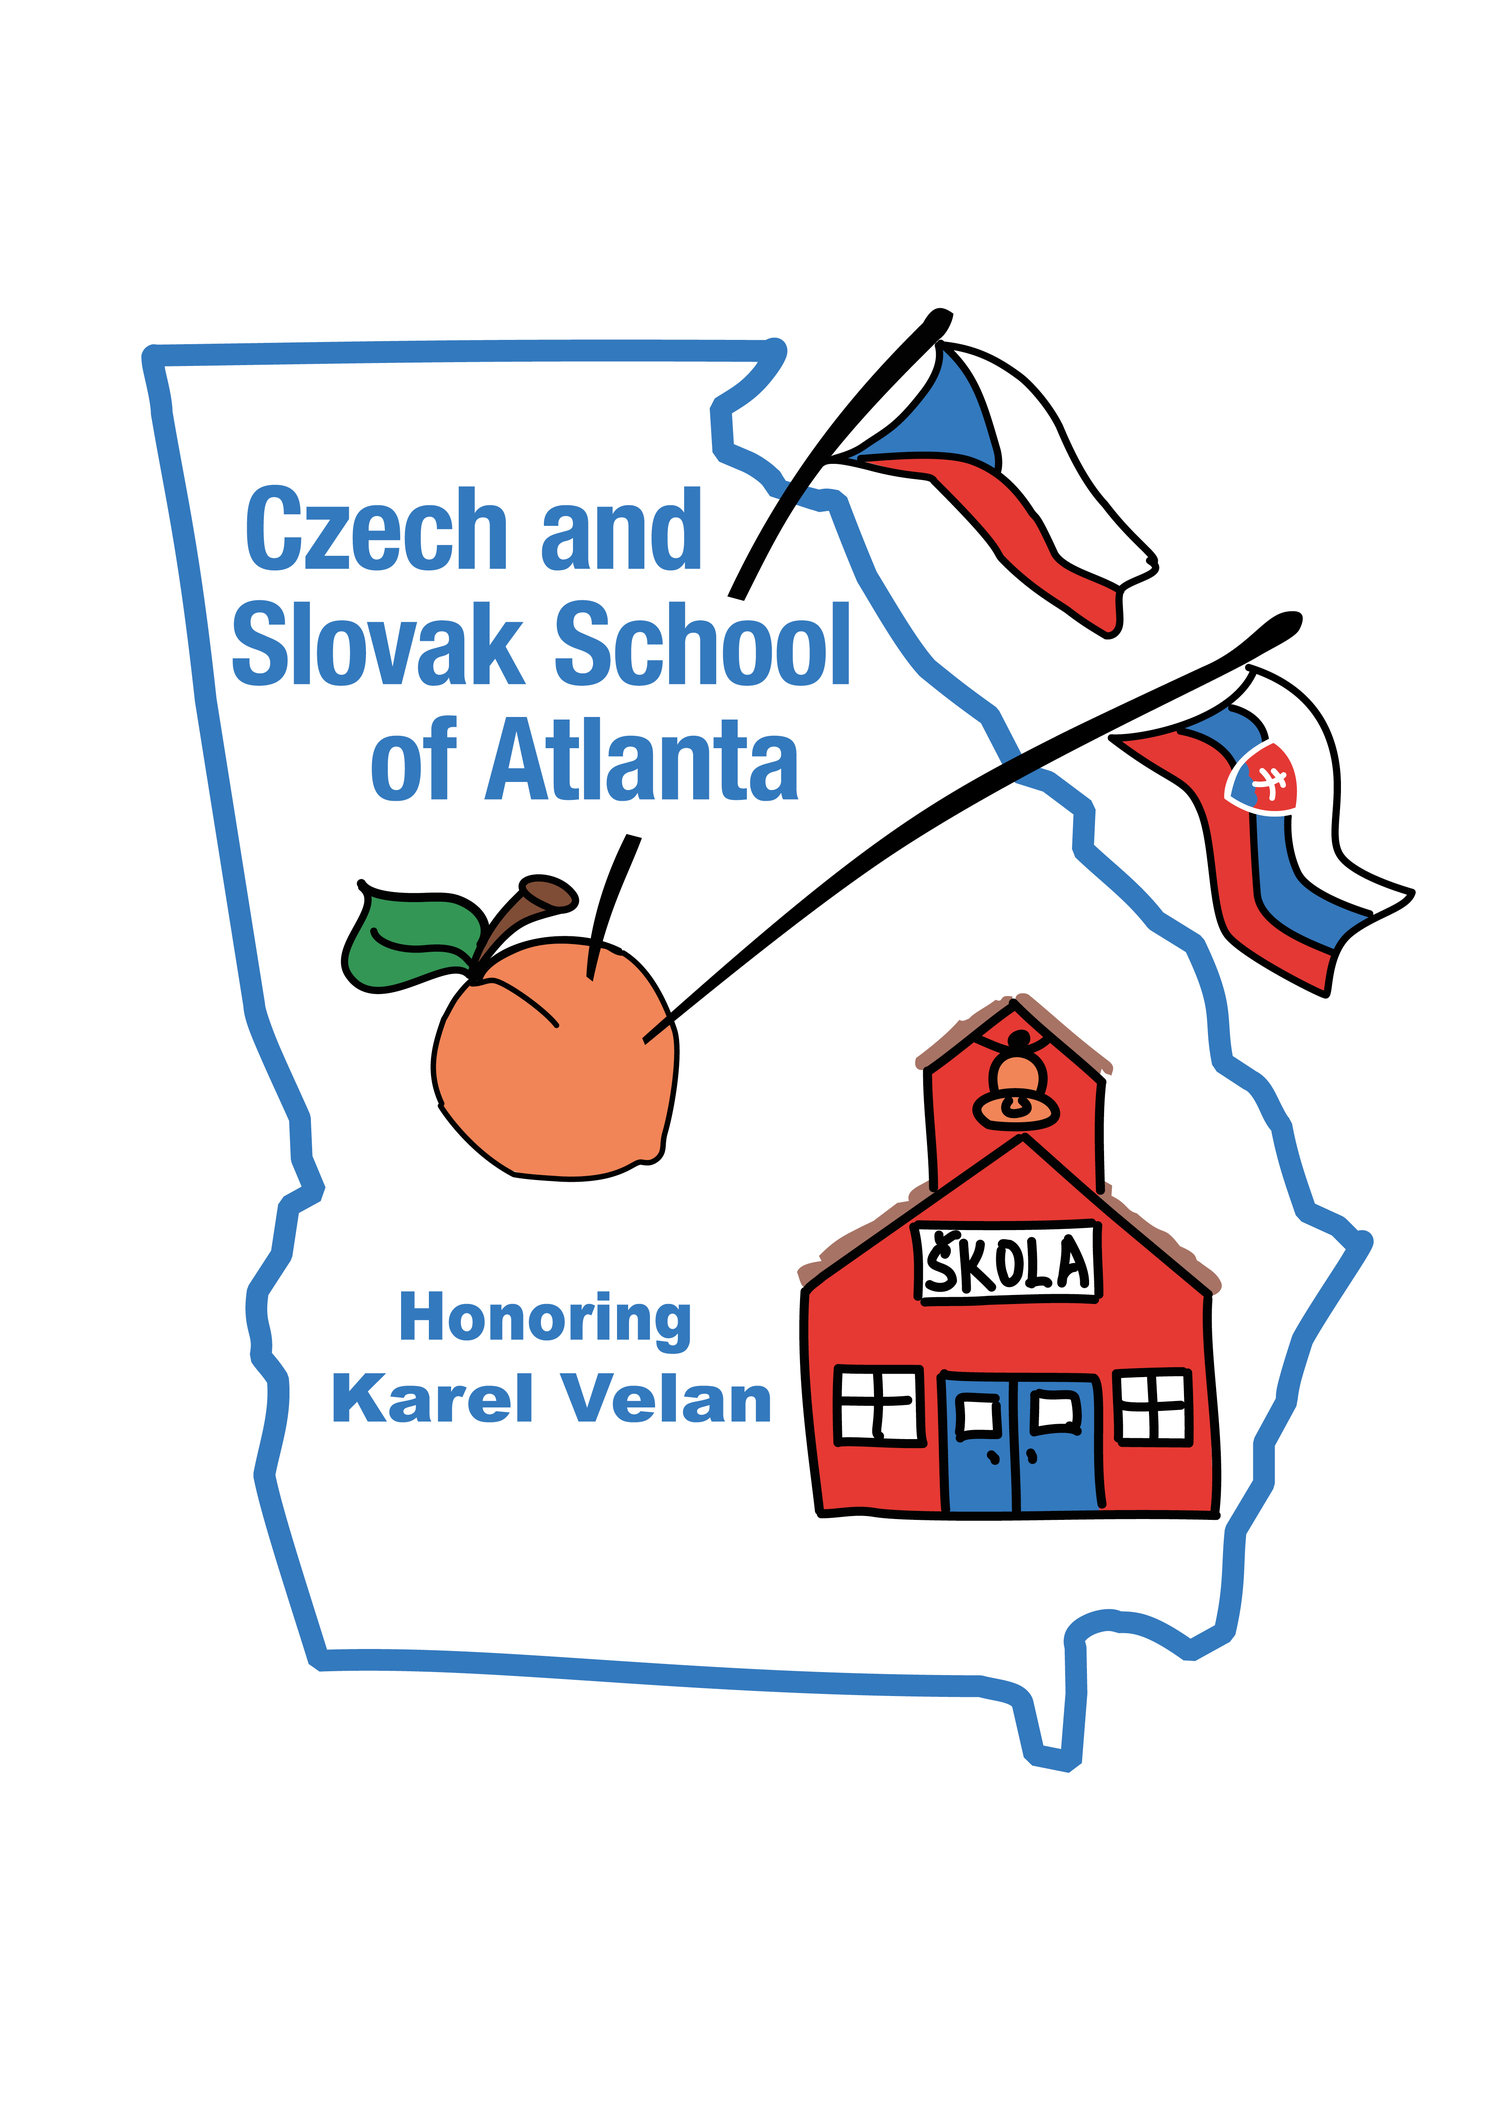 Czech and Slovak school of Atlanta